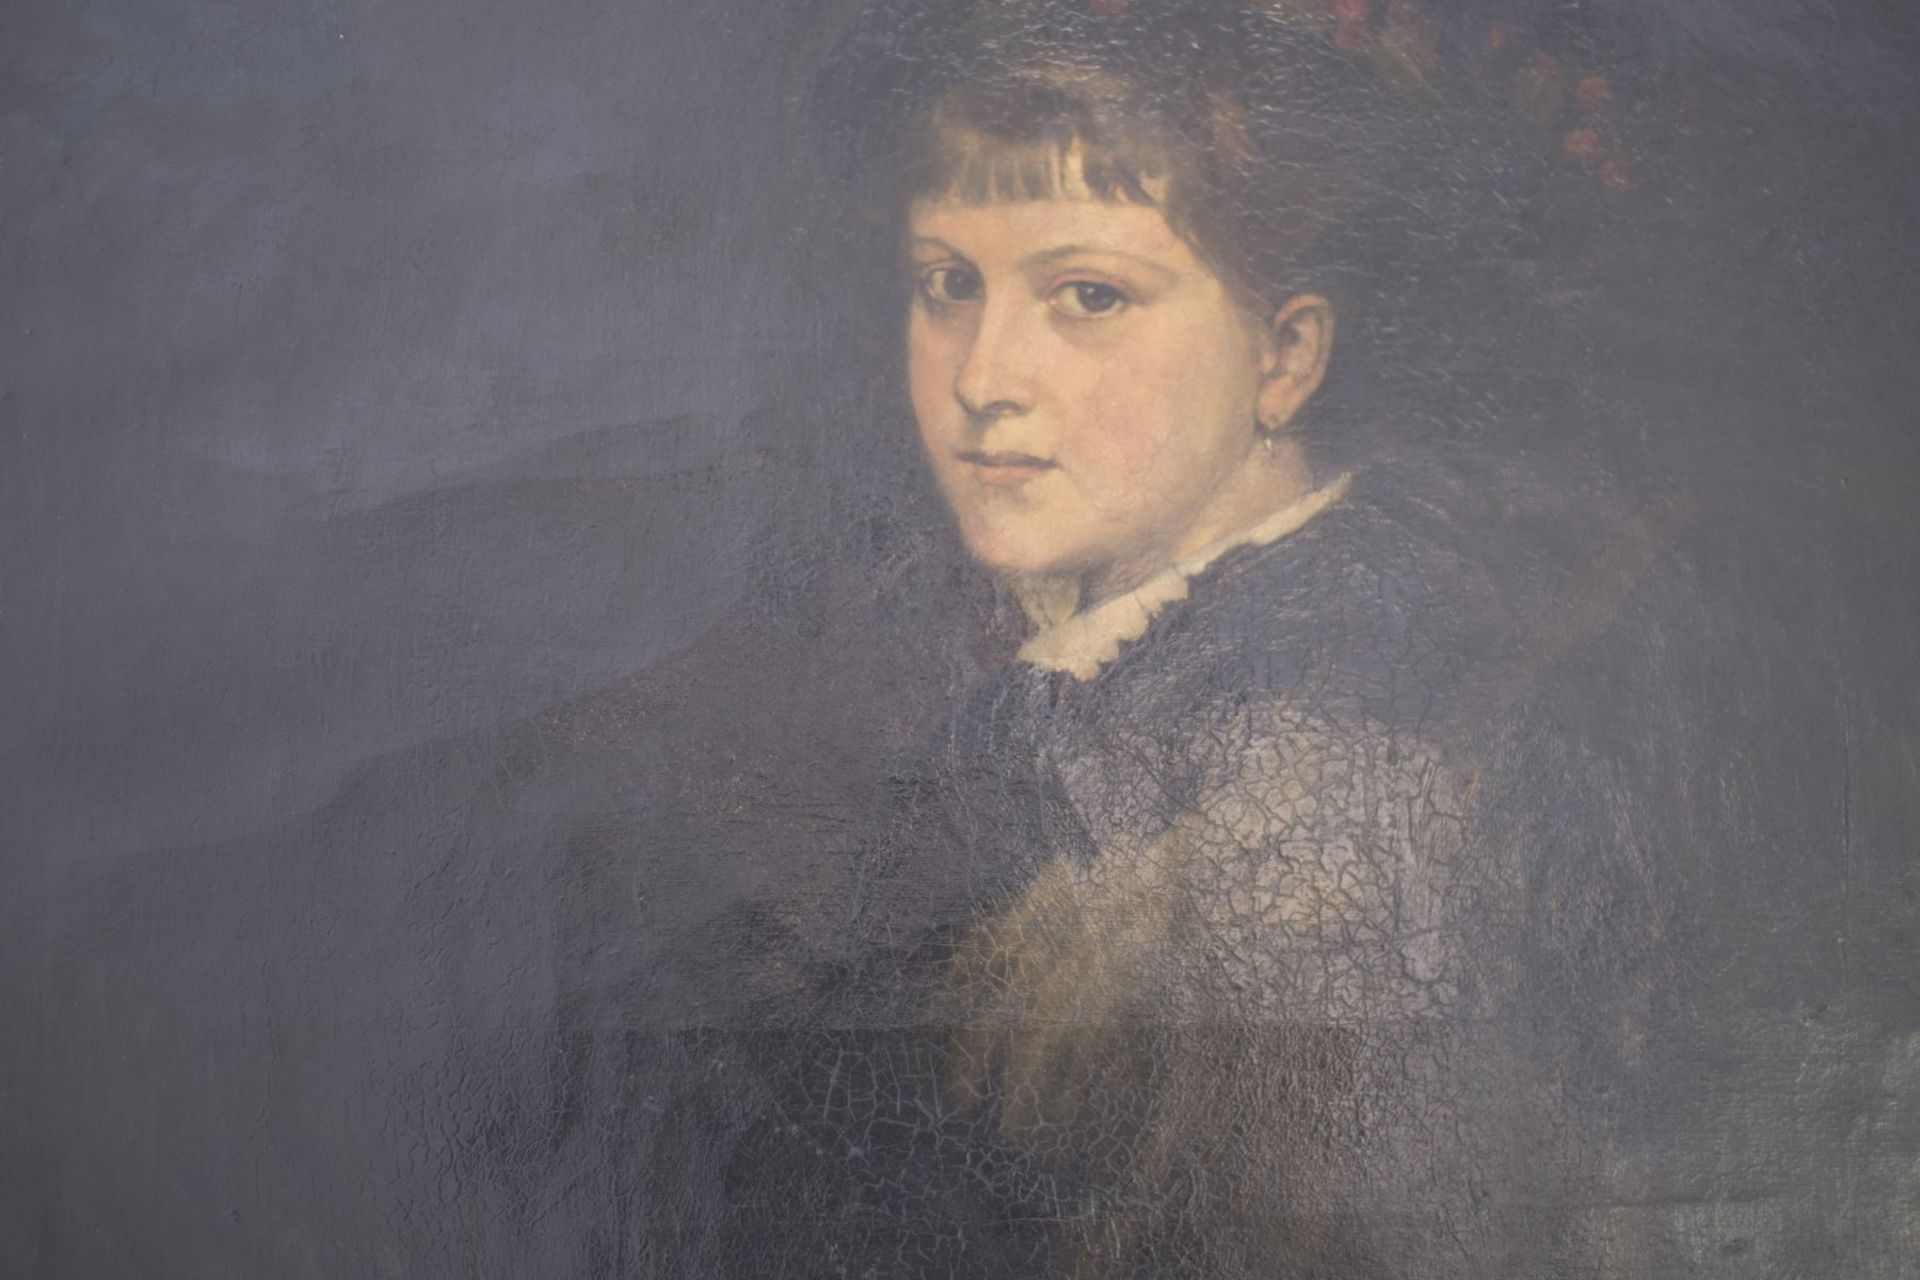 """Portrait """"Lady in Black"""" attributed to Franz von Lenbach (1836-1904) - Image 2 of 3"""